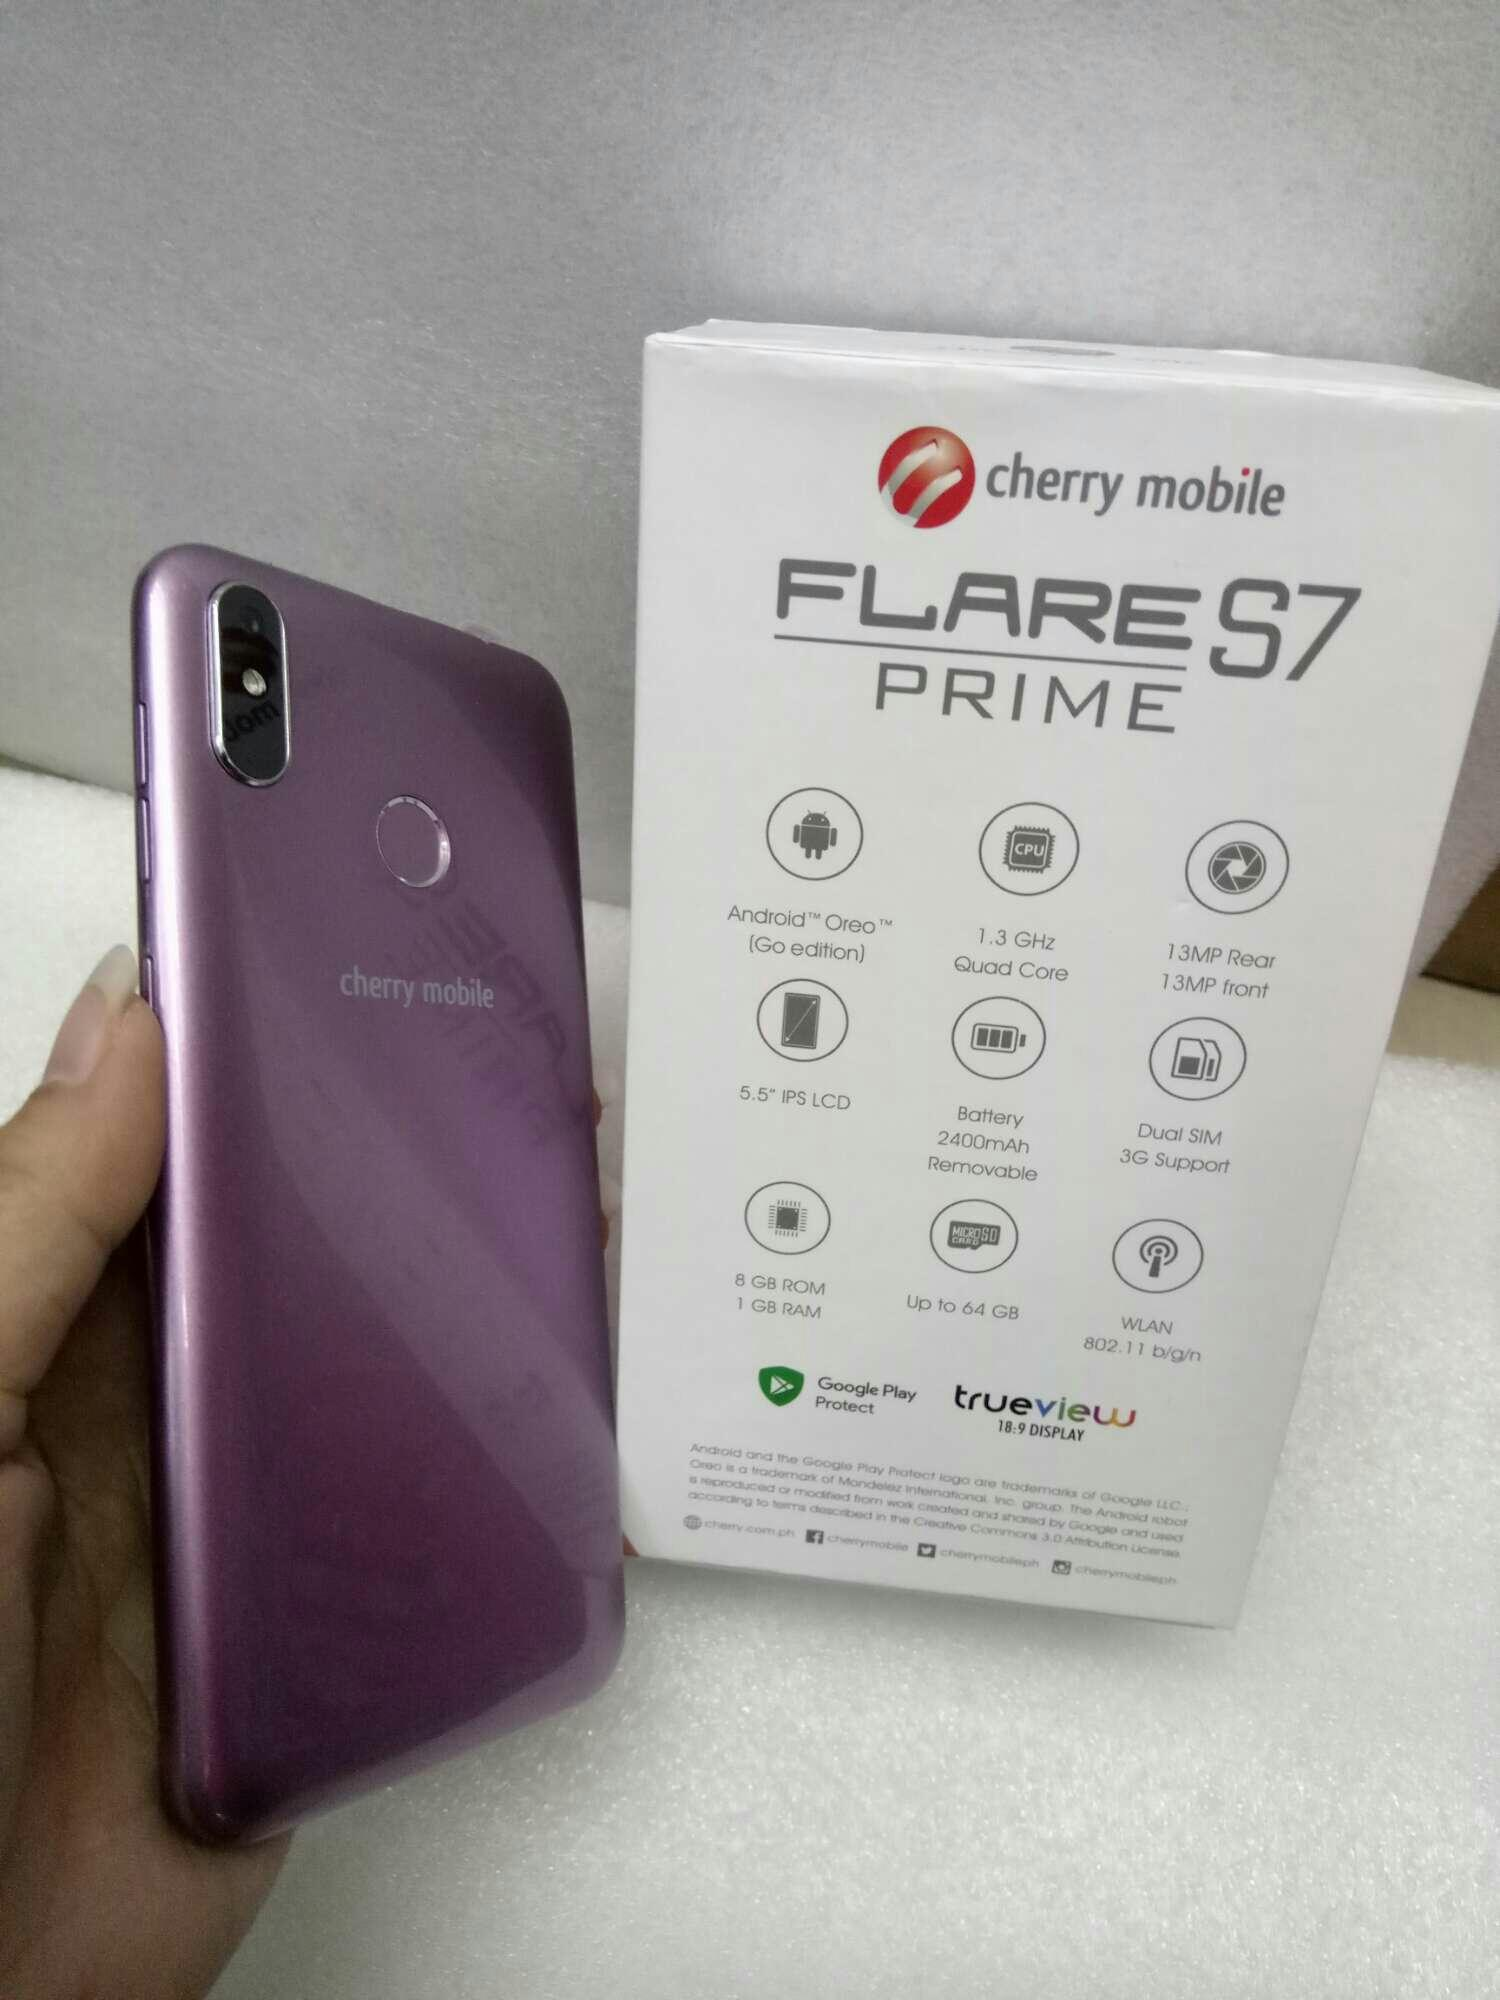 Cherry Mobile Philippines - Cherry Mobile Phone for sale